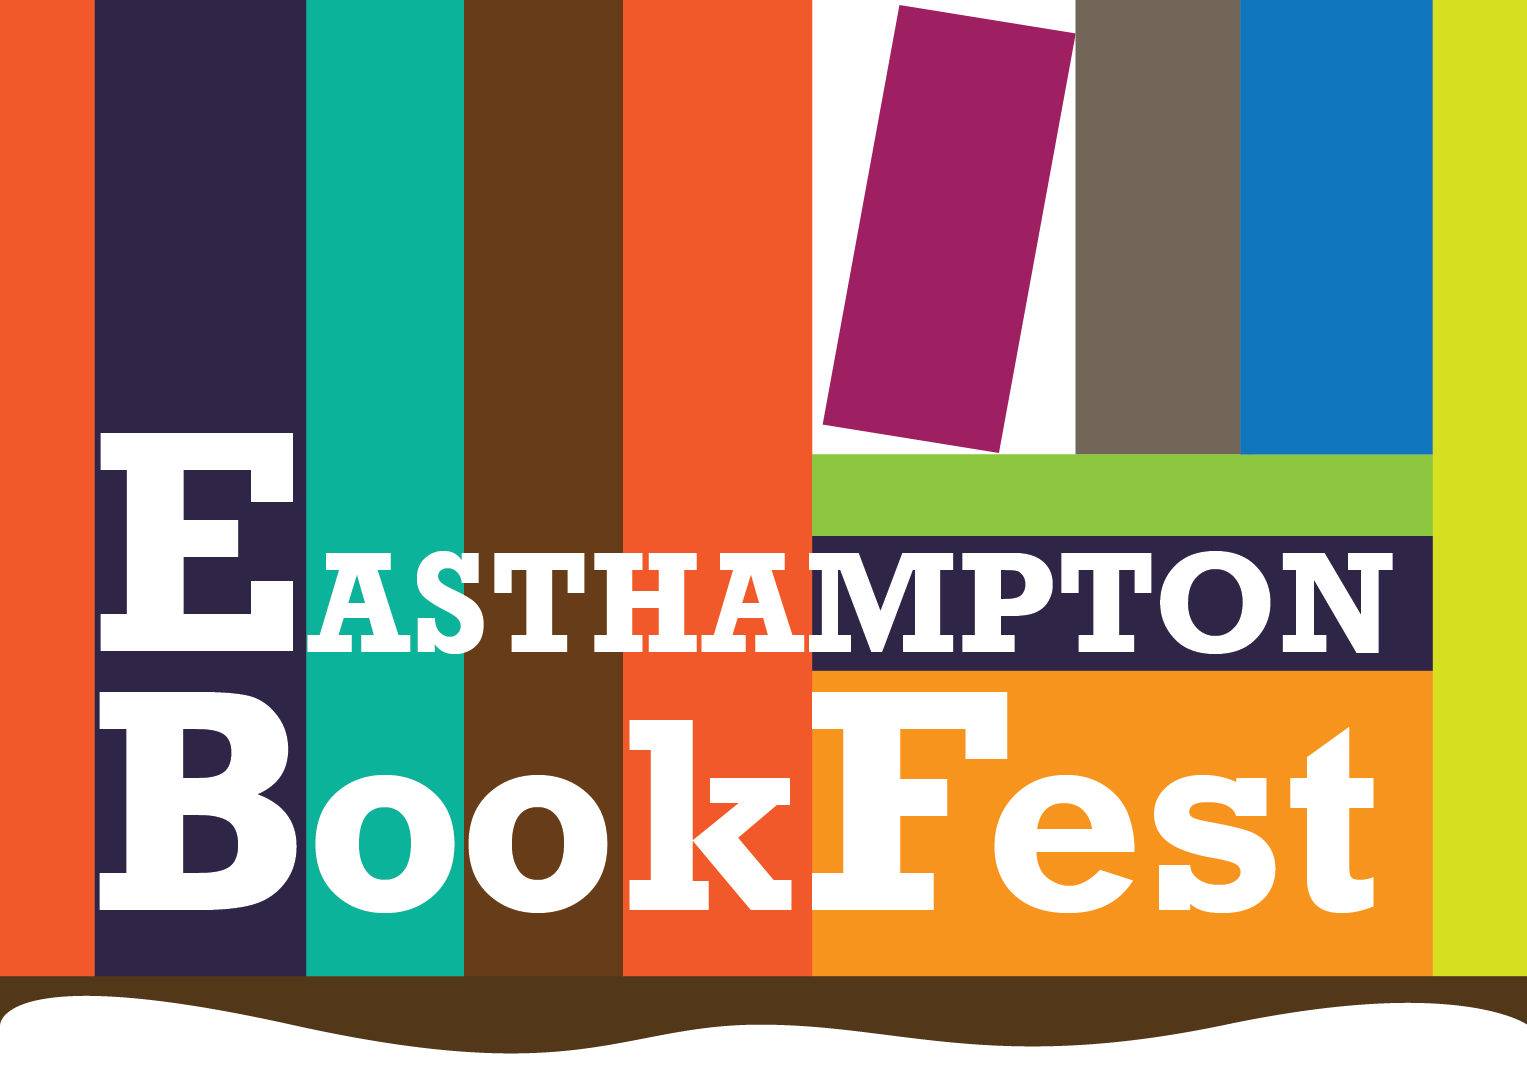 April 13: Easthampton Book Fest